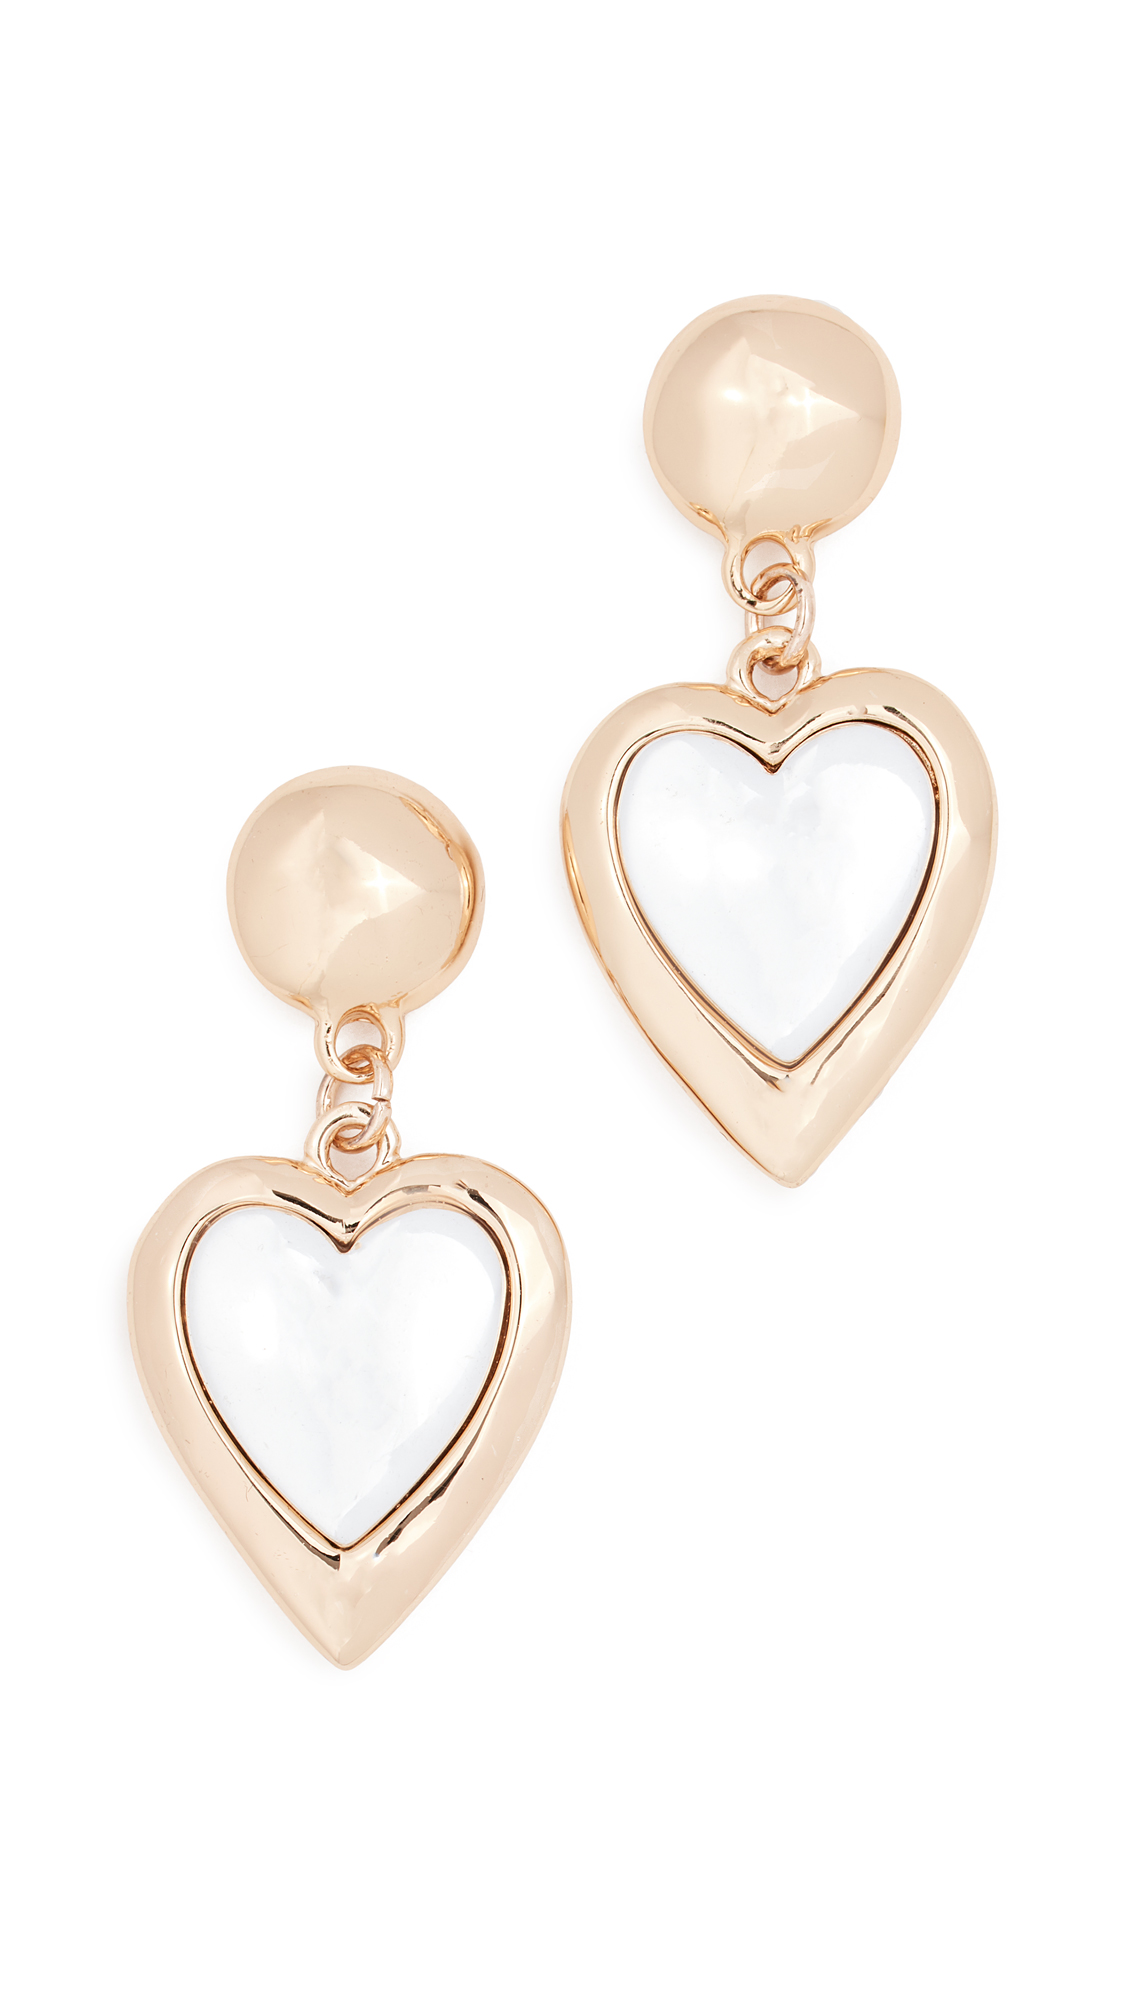 RELIQUIA Kind Heart Earrings in Yellow Gold